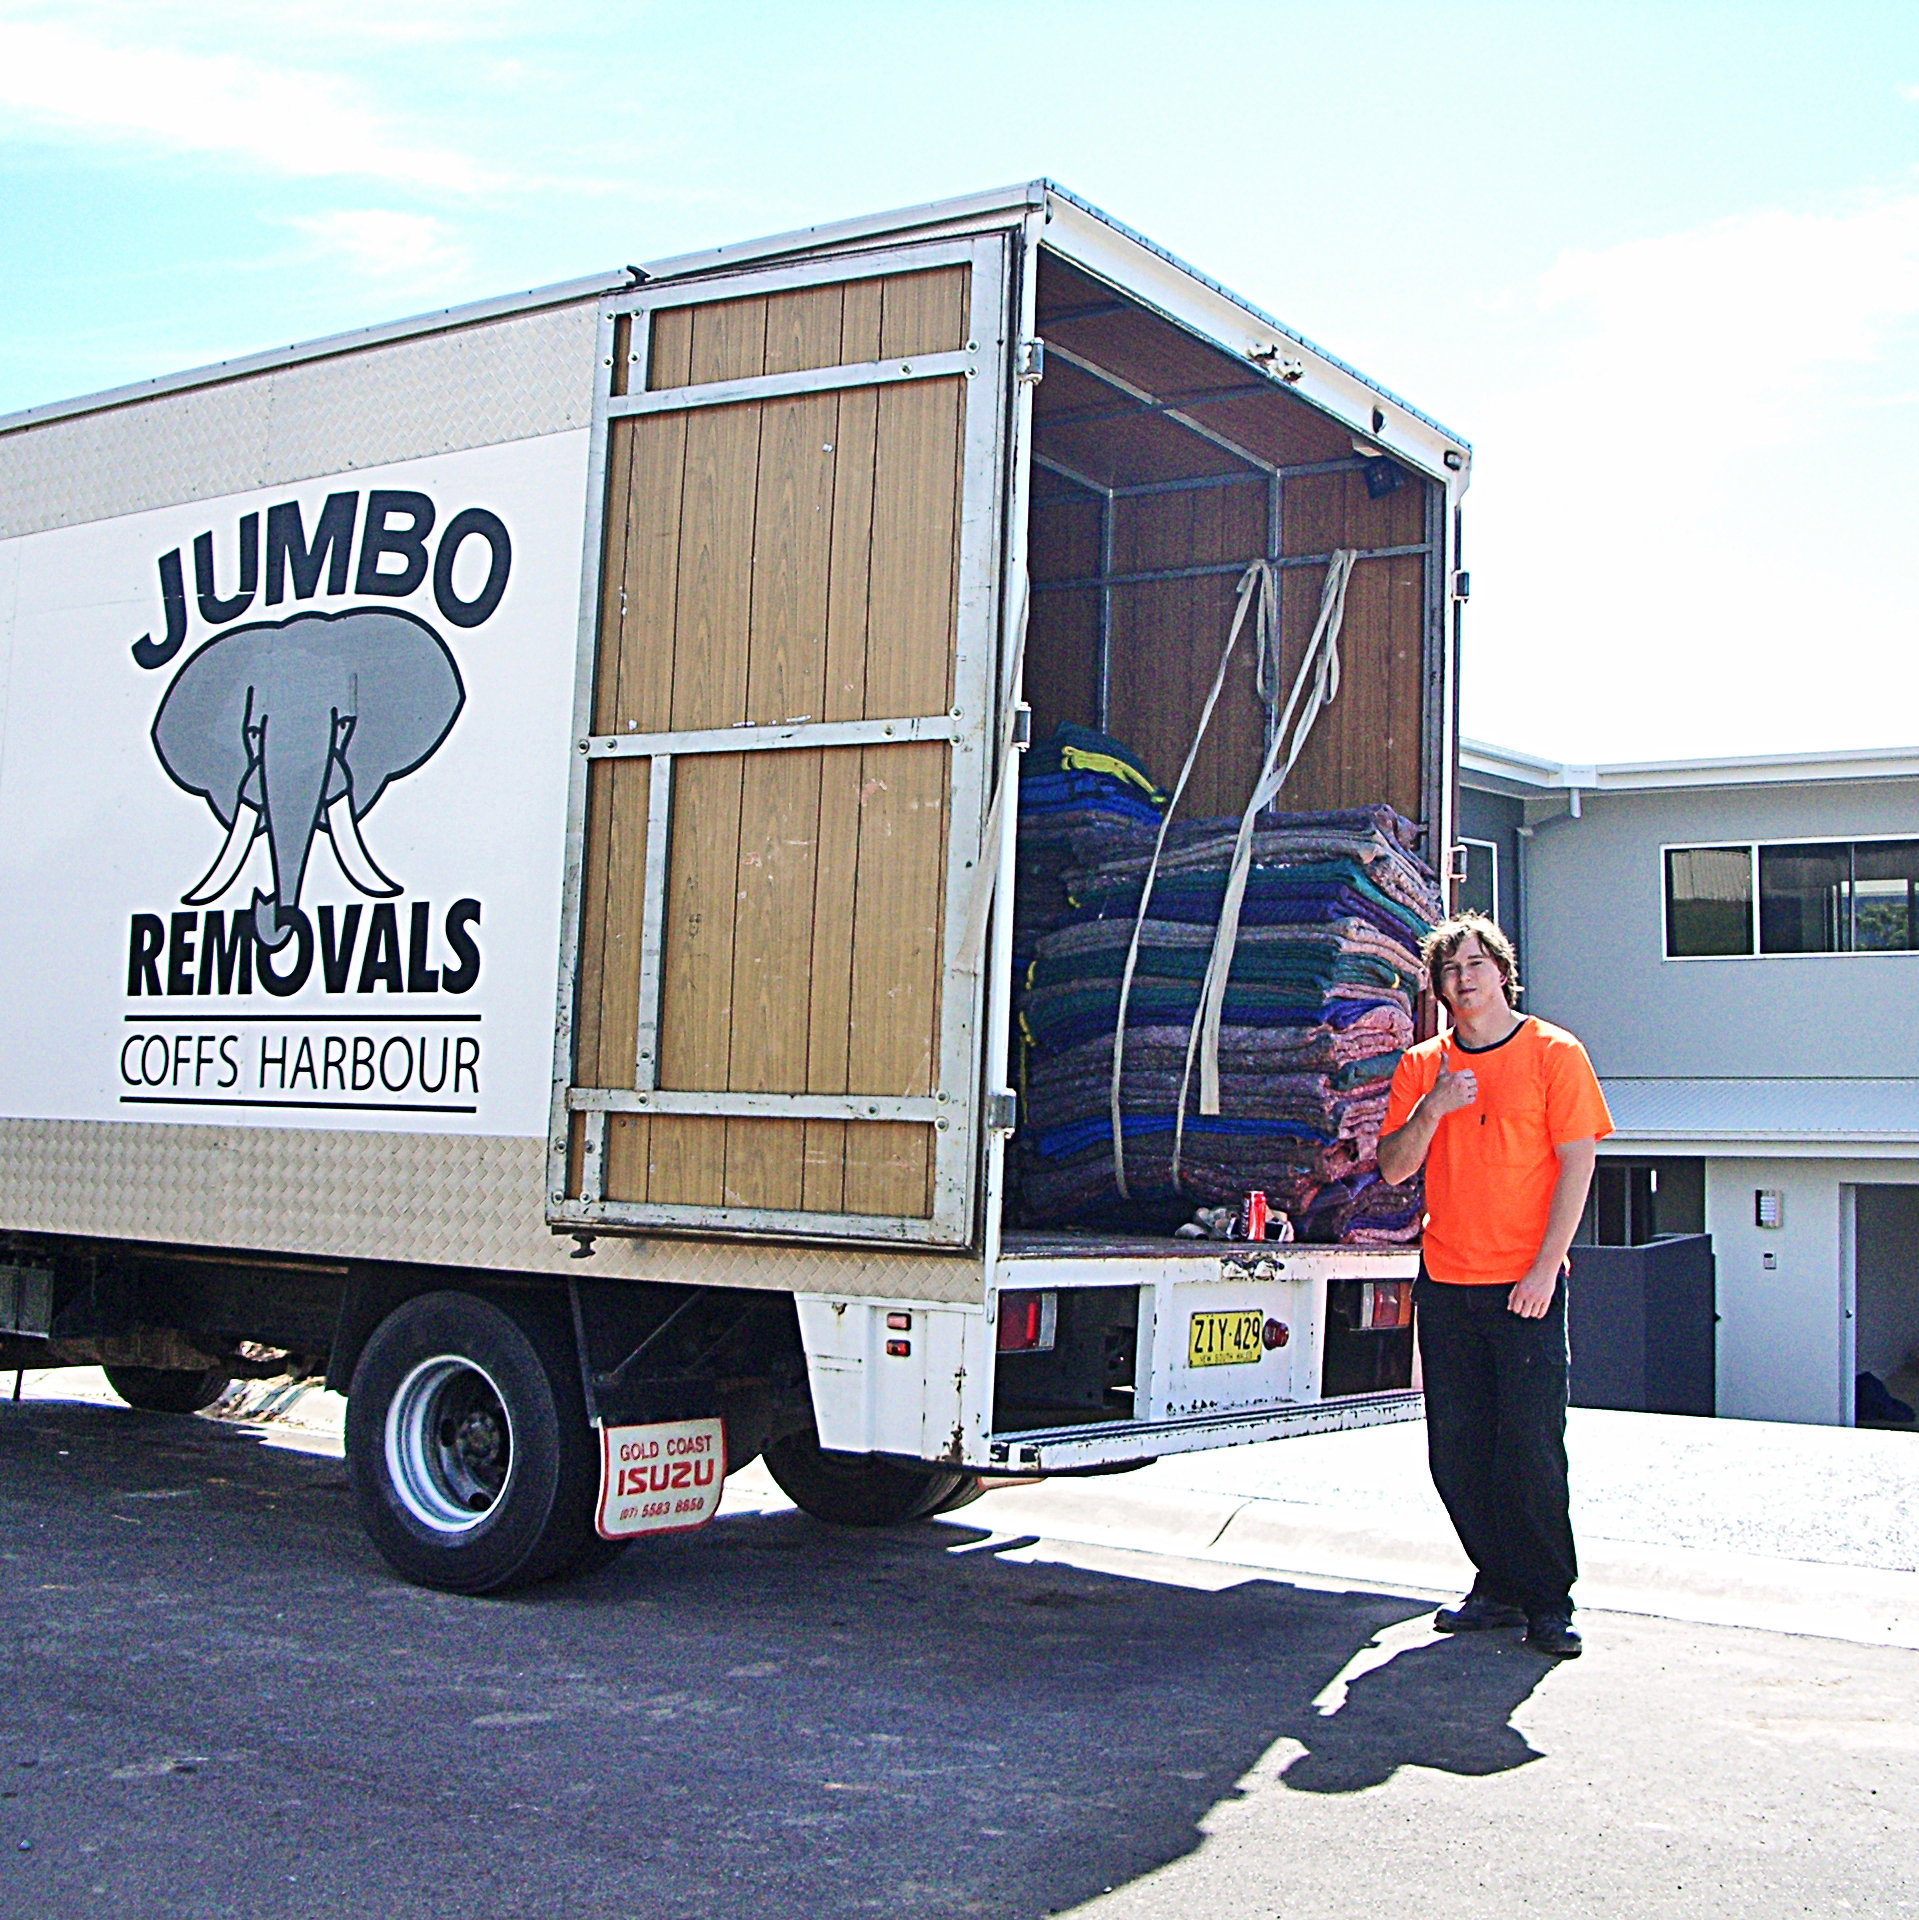 John with Jumbo removals coffs harbour truck